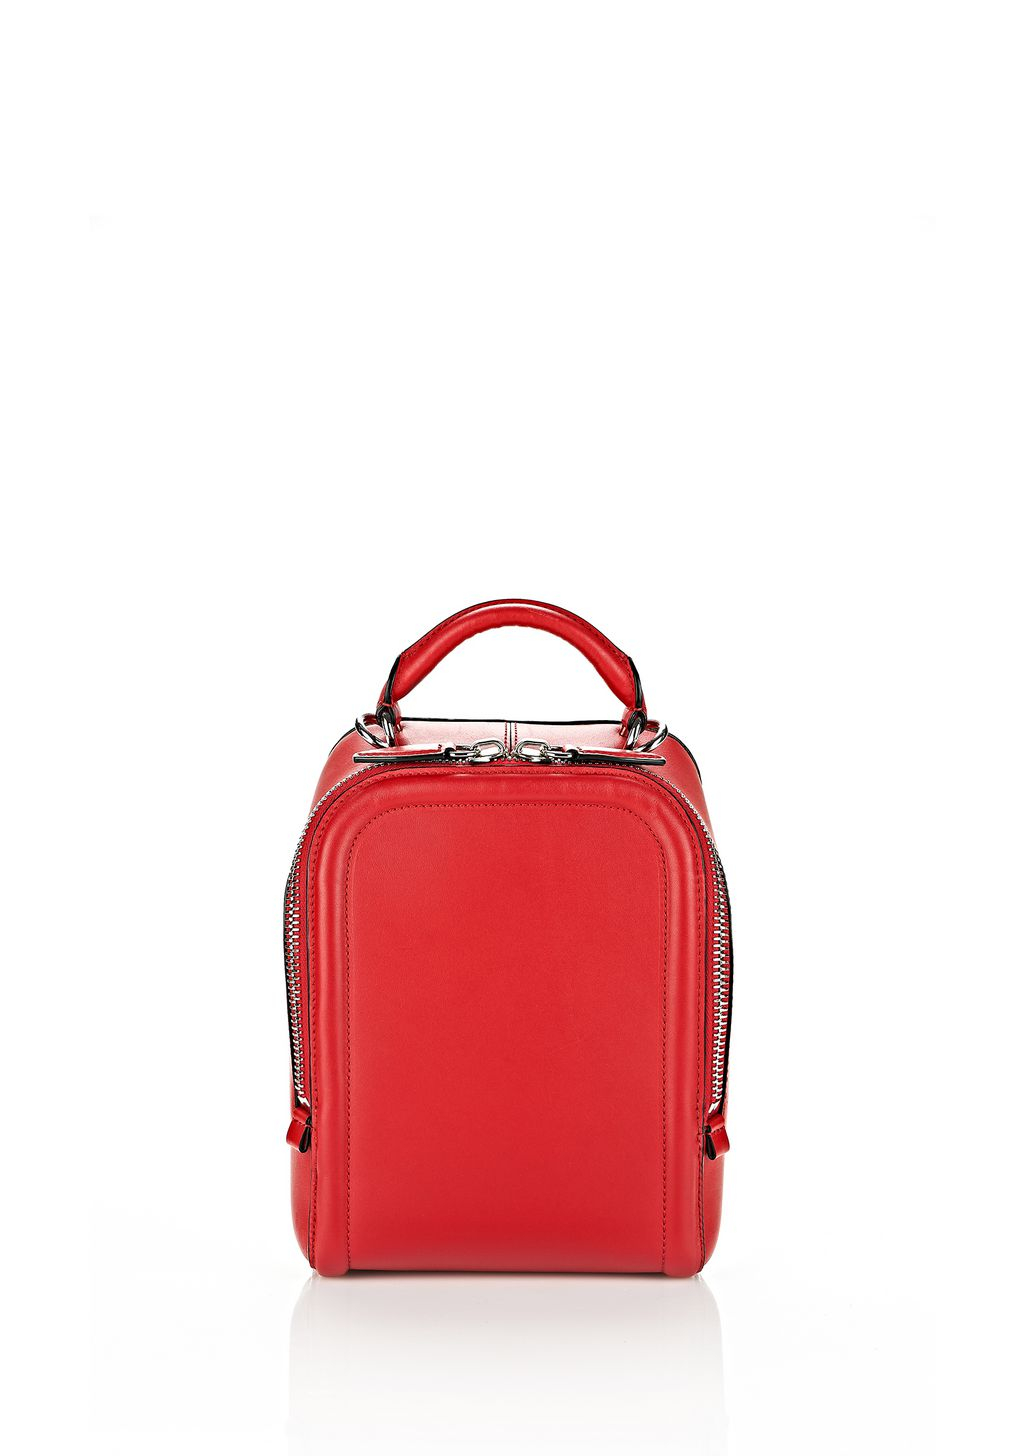 Alexander wang Small Shoe Satchel In Lacquer With Rhodium ...